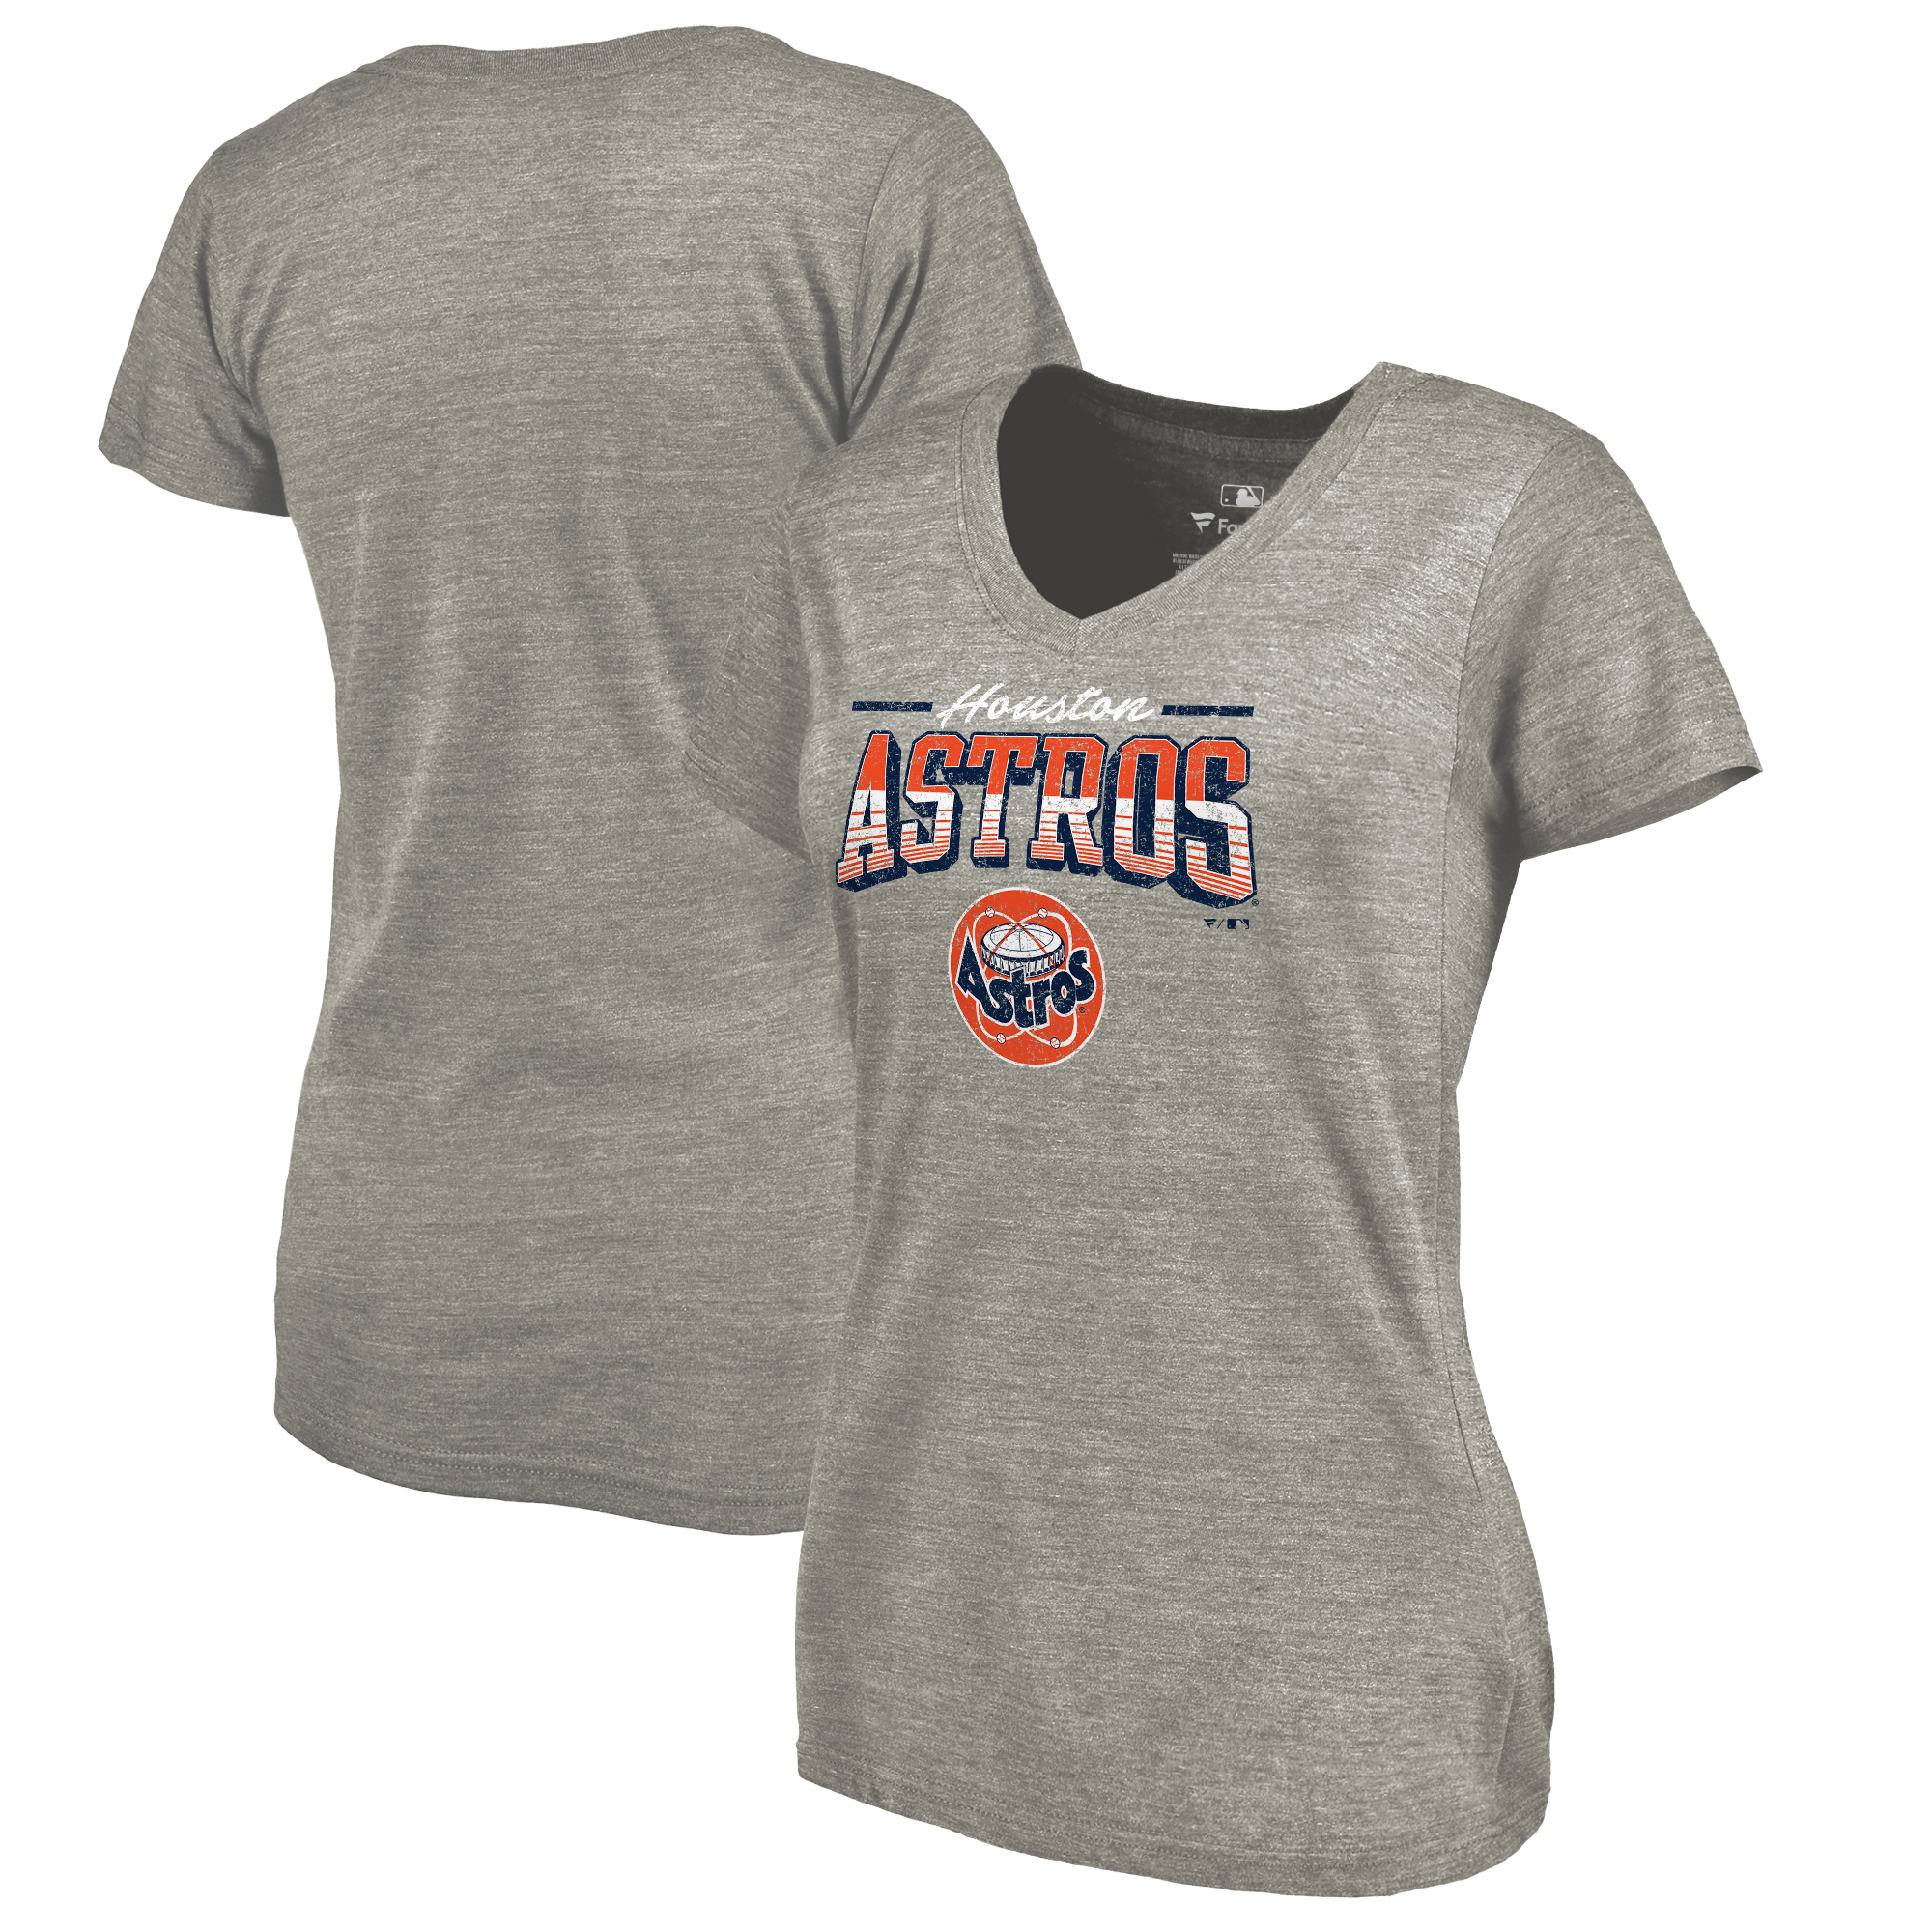 Houston Astros Fanatics Branded Women's Cooperstown Collection Season Ticket Tri-Blend V-Neck T-Shirt - Heathered Gray